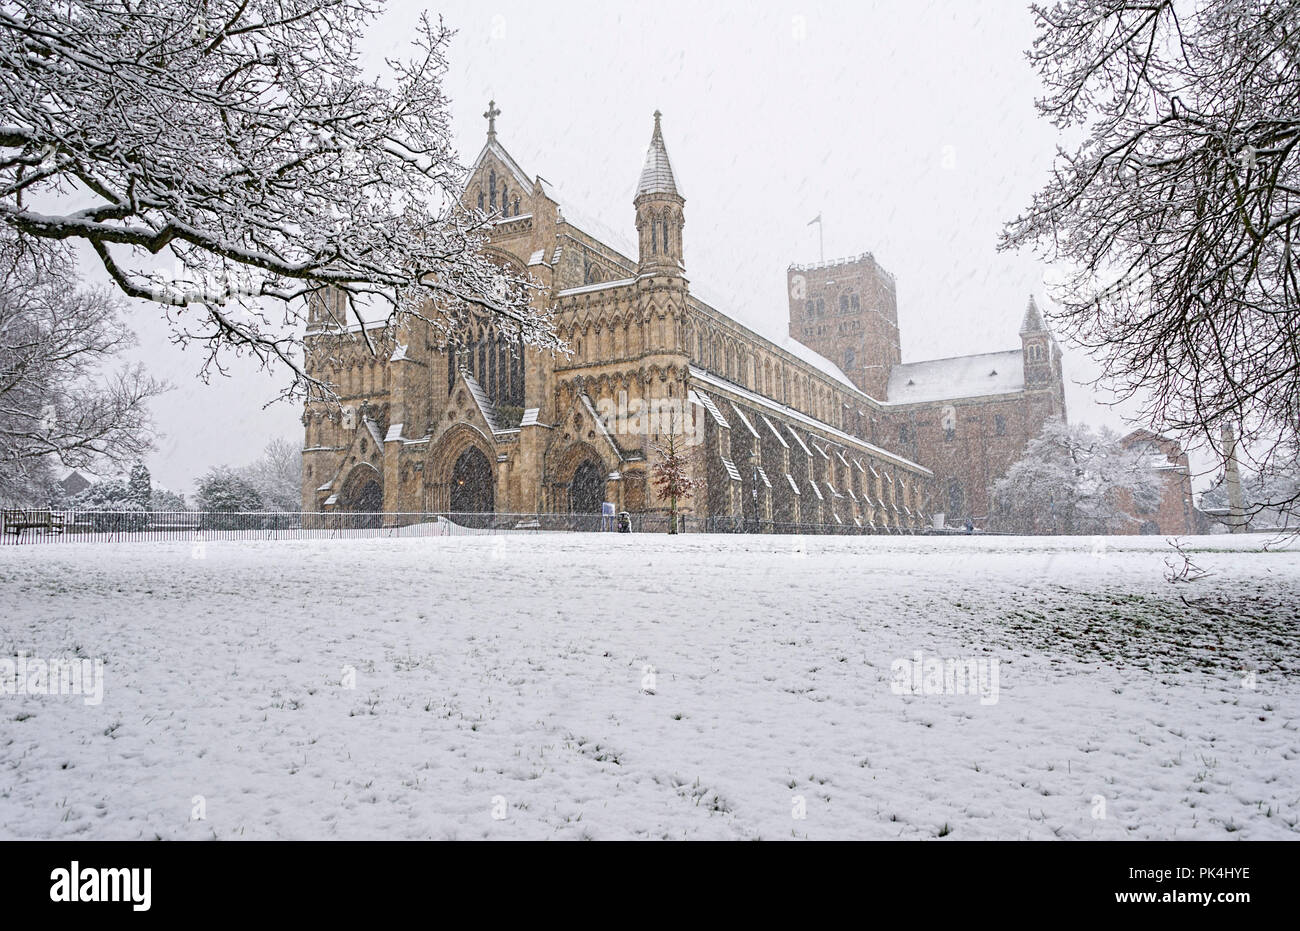 st-albans-cathedral-snow-scene-uk-PK4HYE